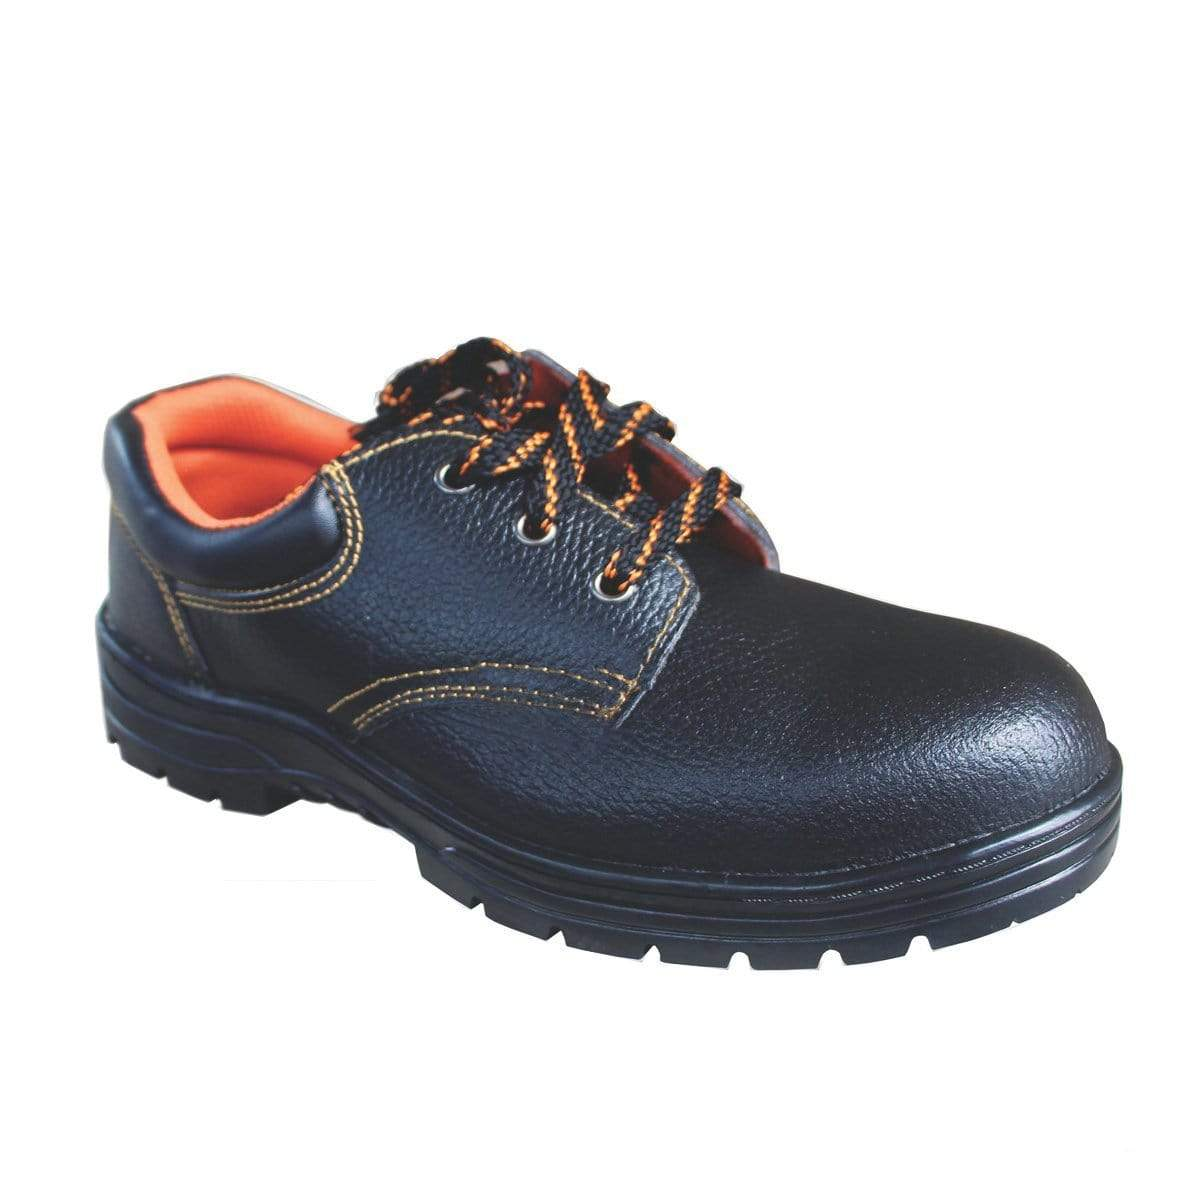 ANEKA Worker Safety Shoes Safety Boots Steel Toe Cap Kasut UK10 1000#